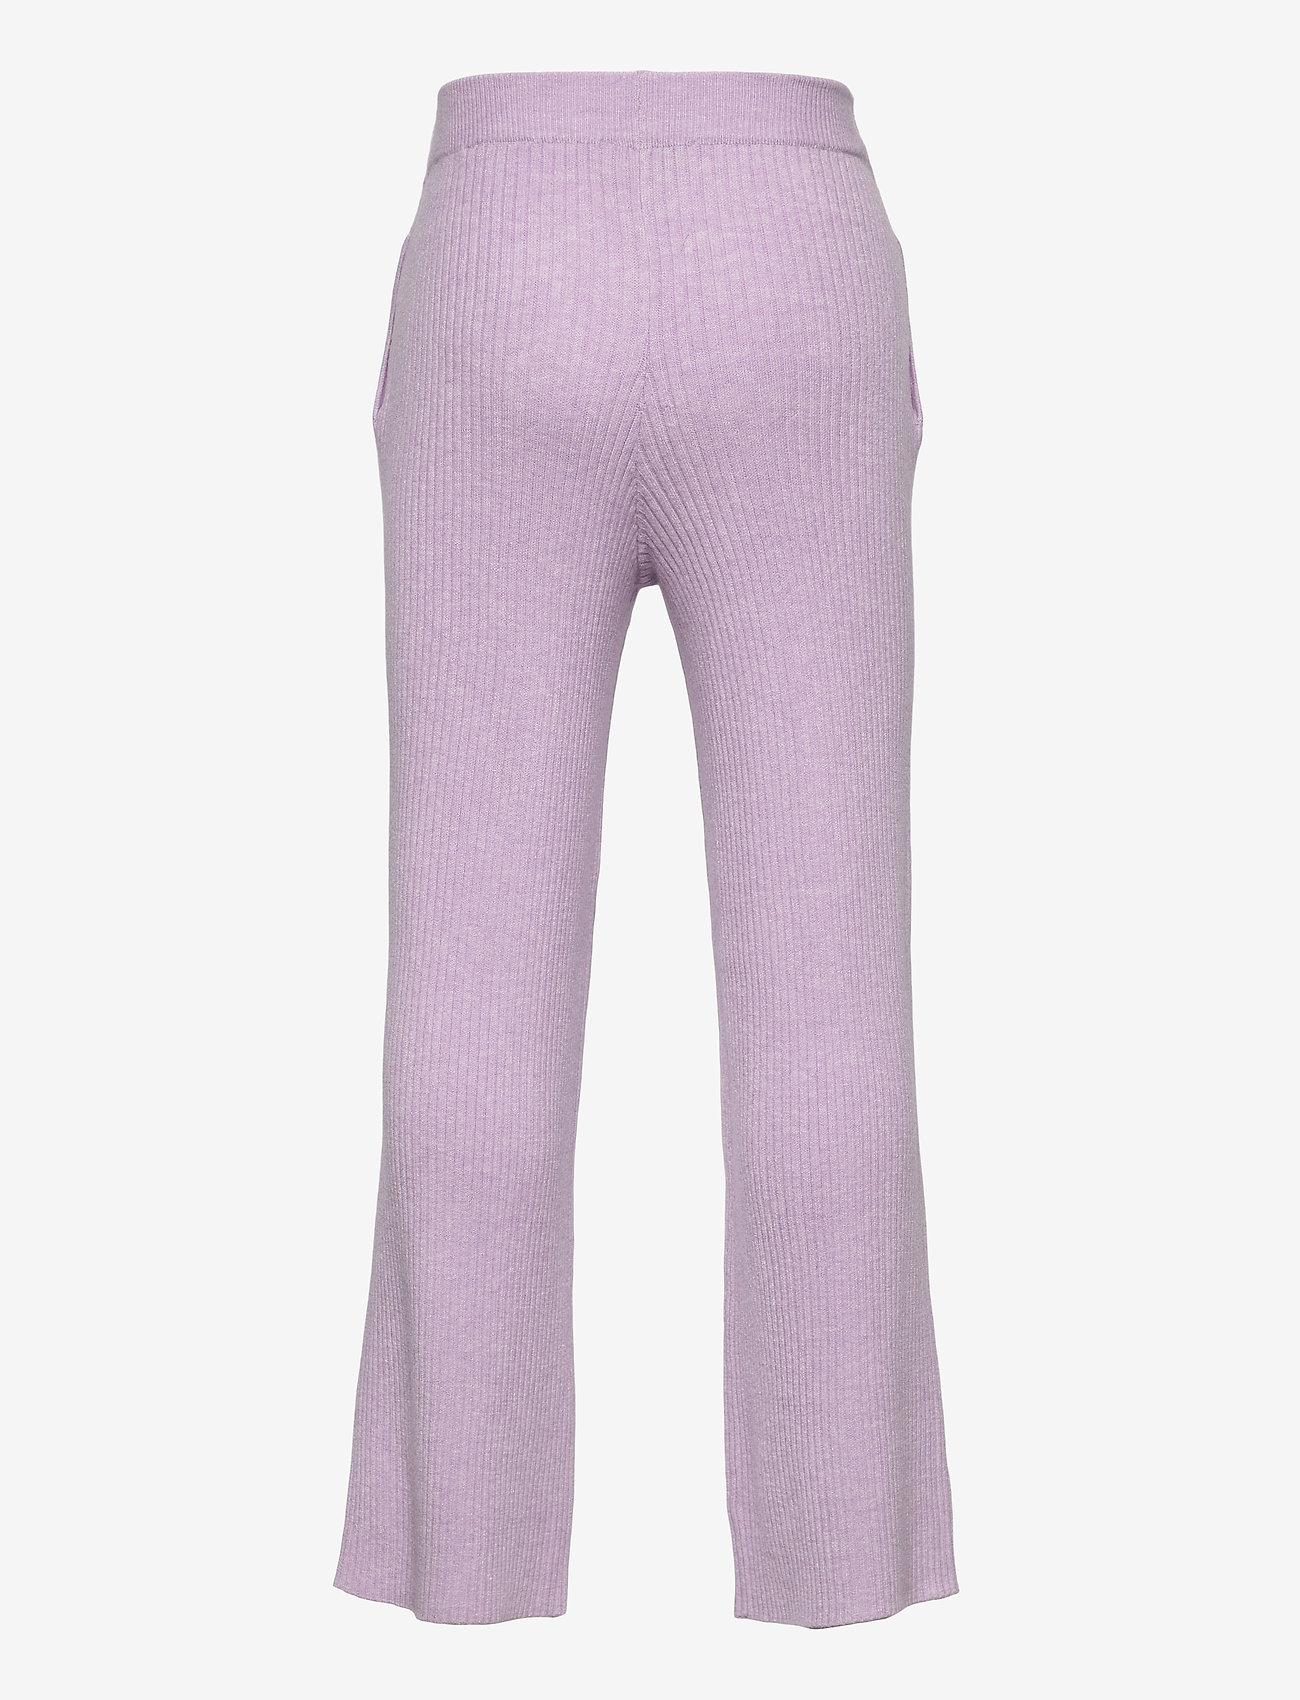 Kids Only - KONFLORELLE  LIFE PANT KNT - kleidung - orchid bloom - 1